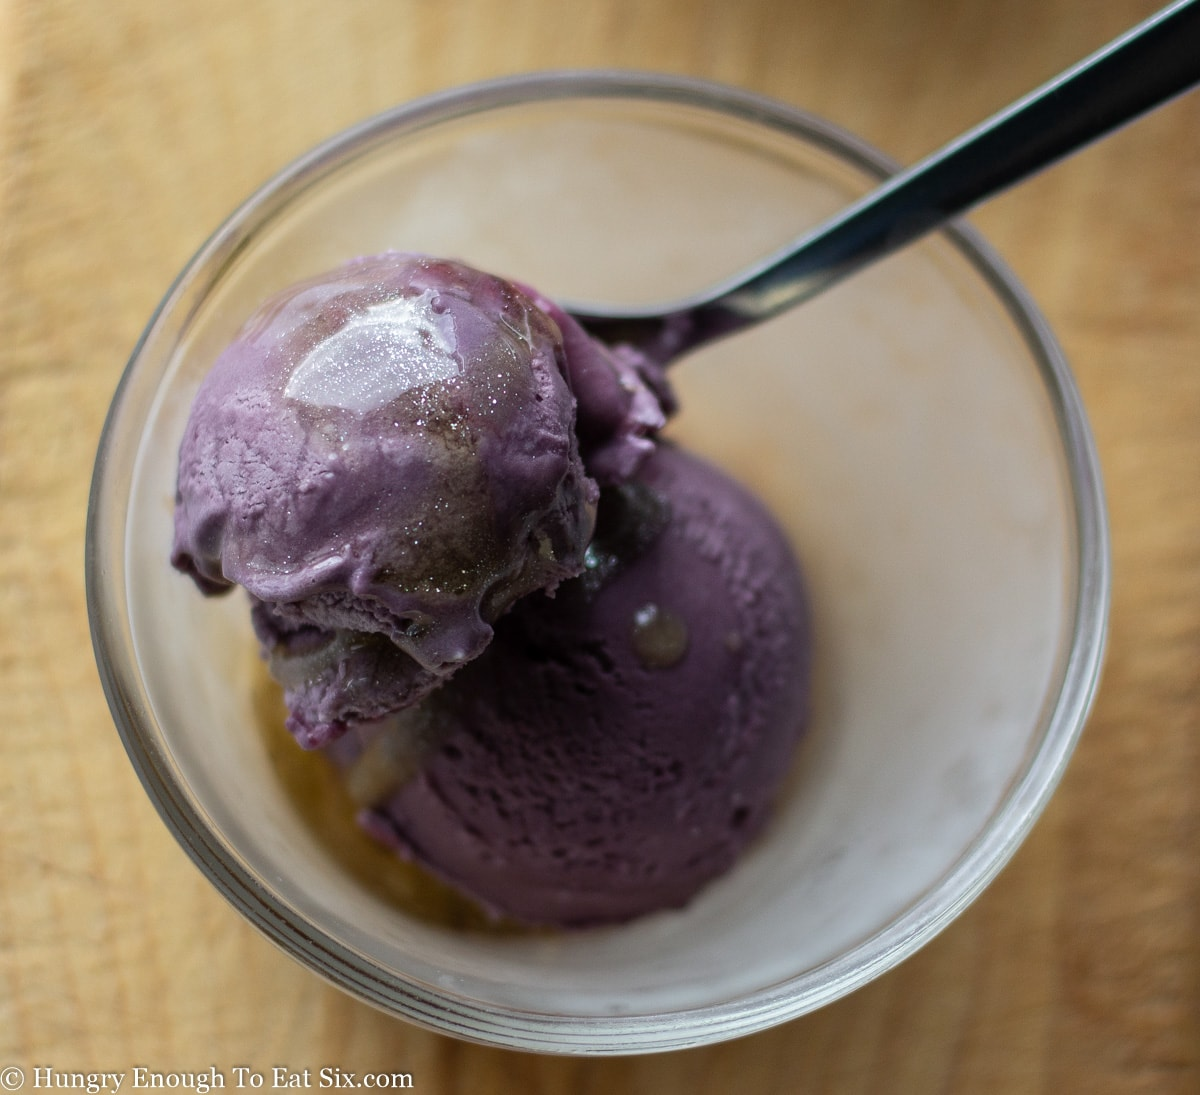 Glass dish of purple ice cream